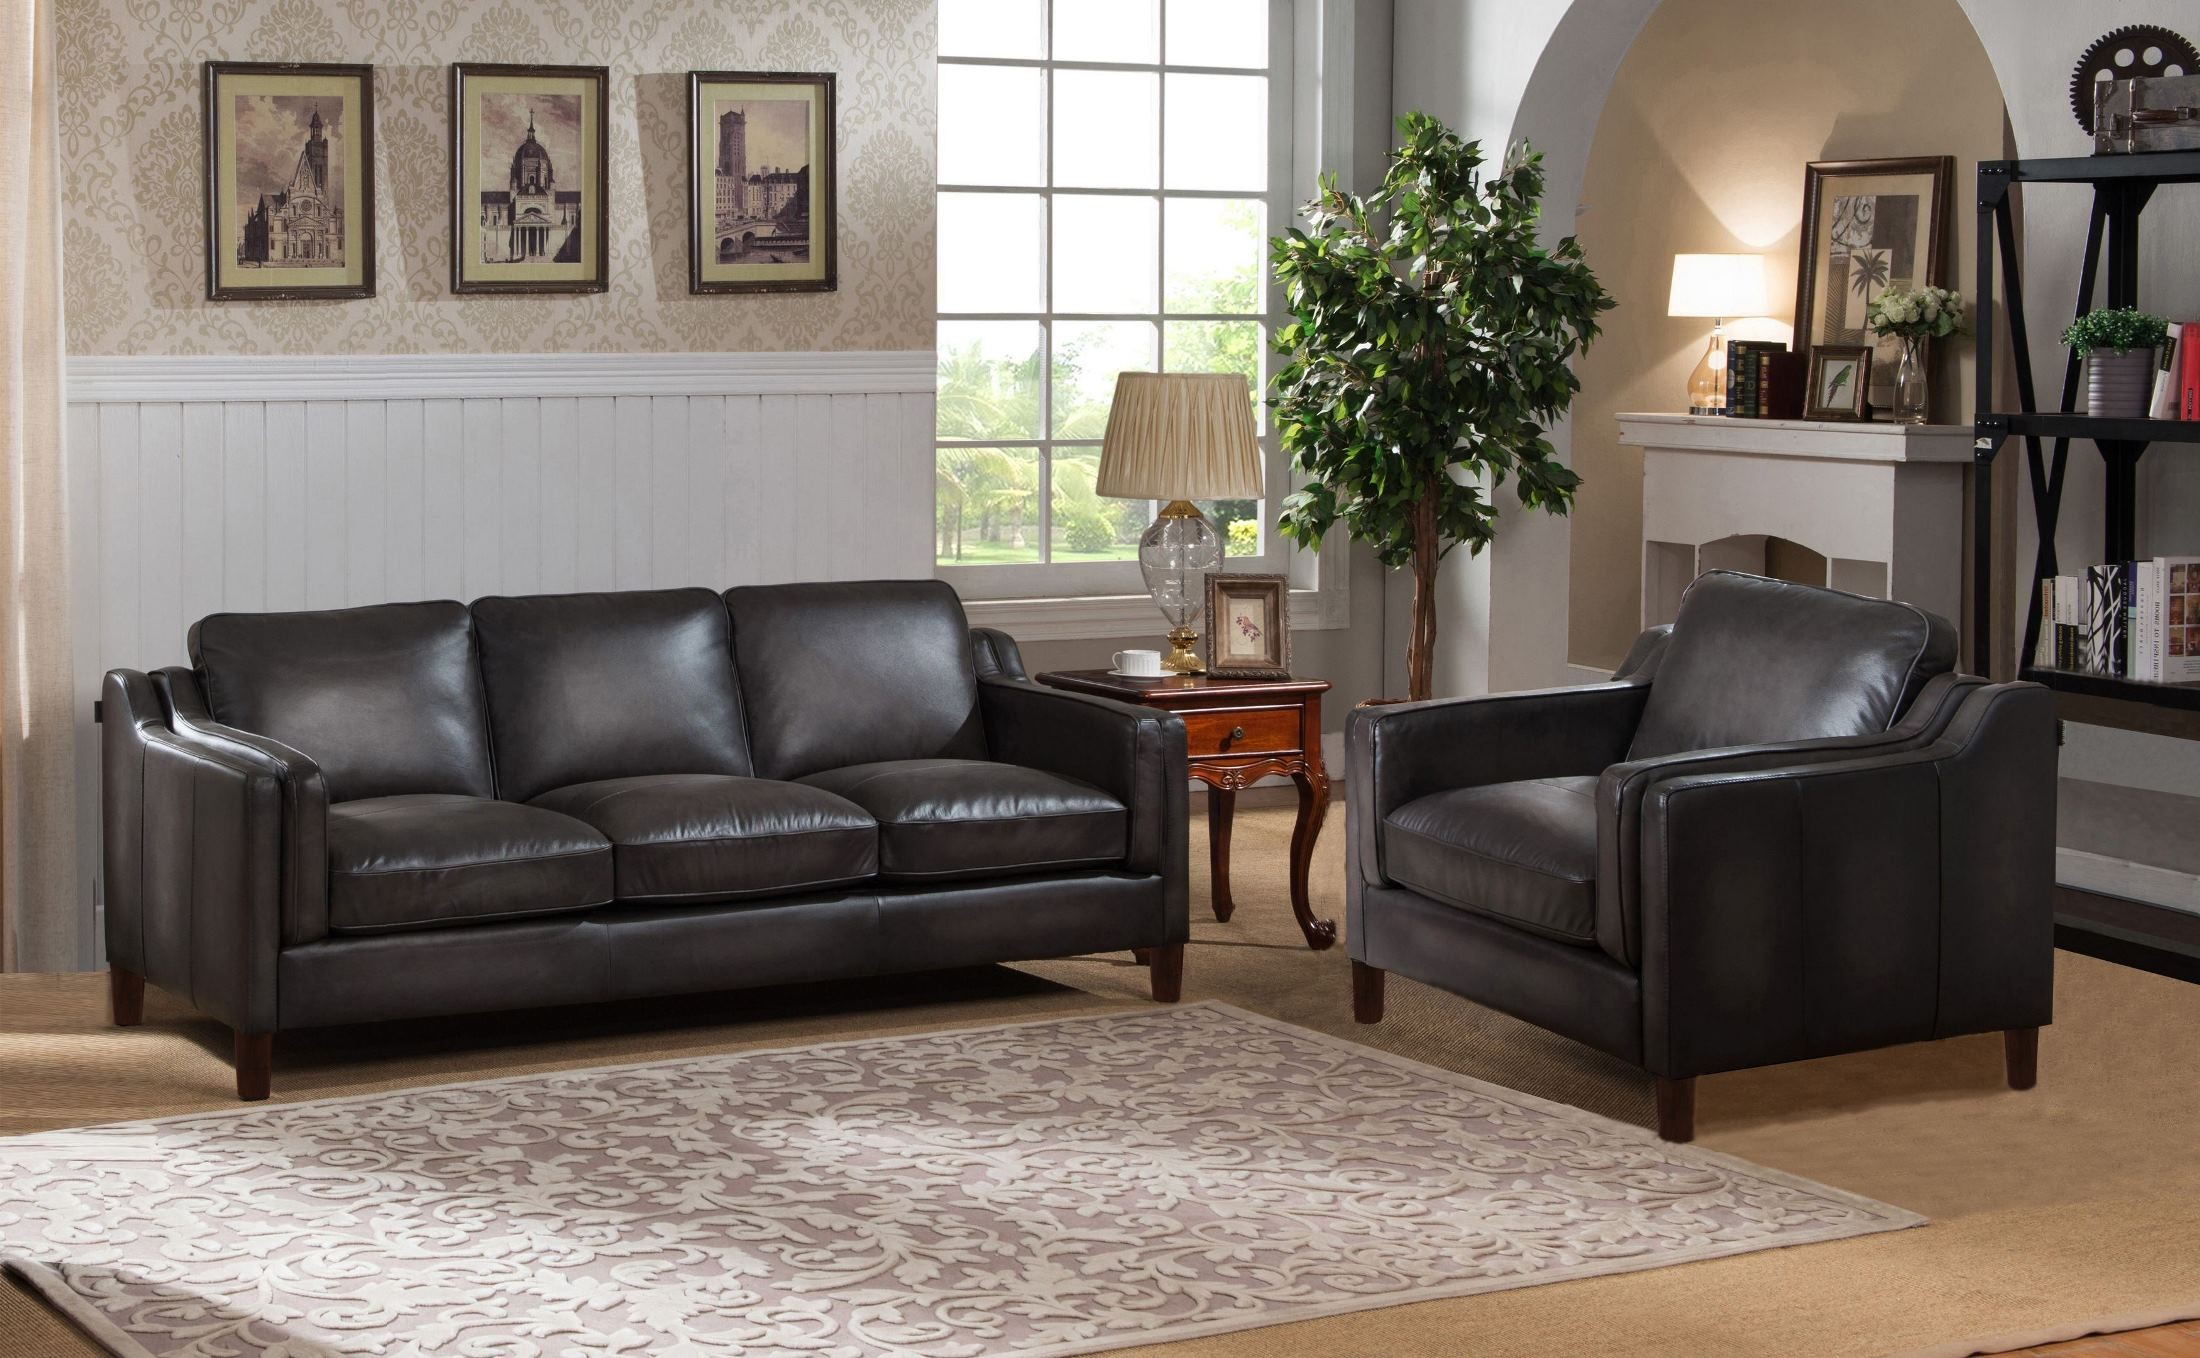 Ballari weathered grey leather living room set for Grey front room furniture